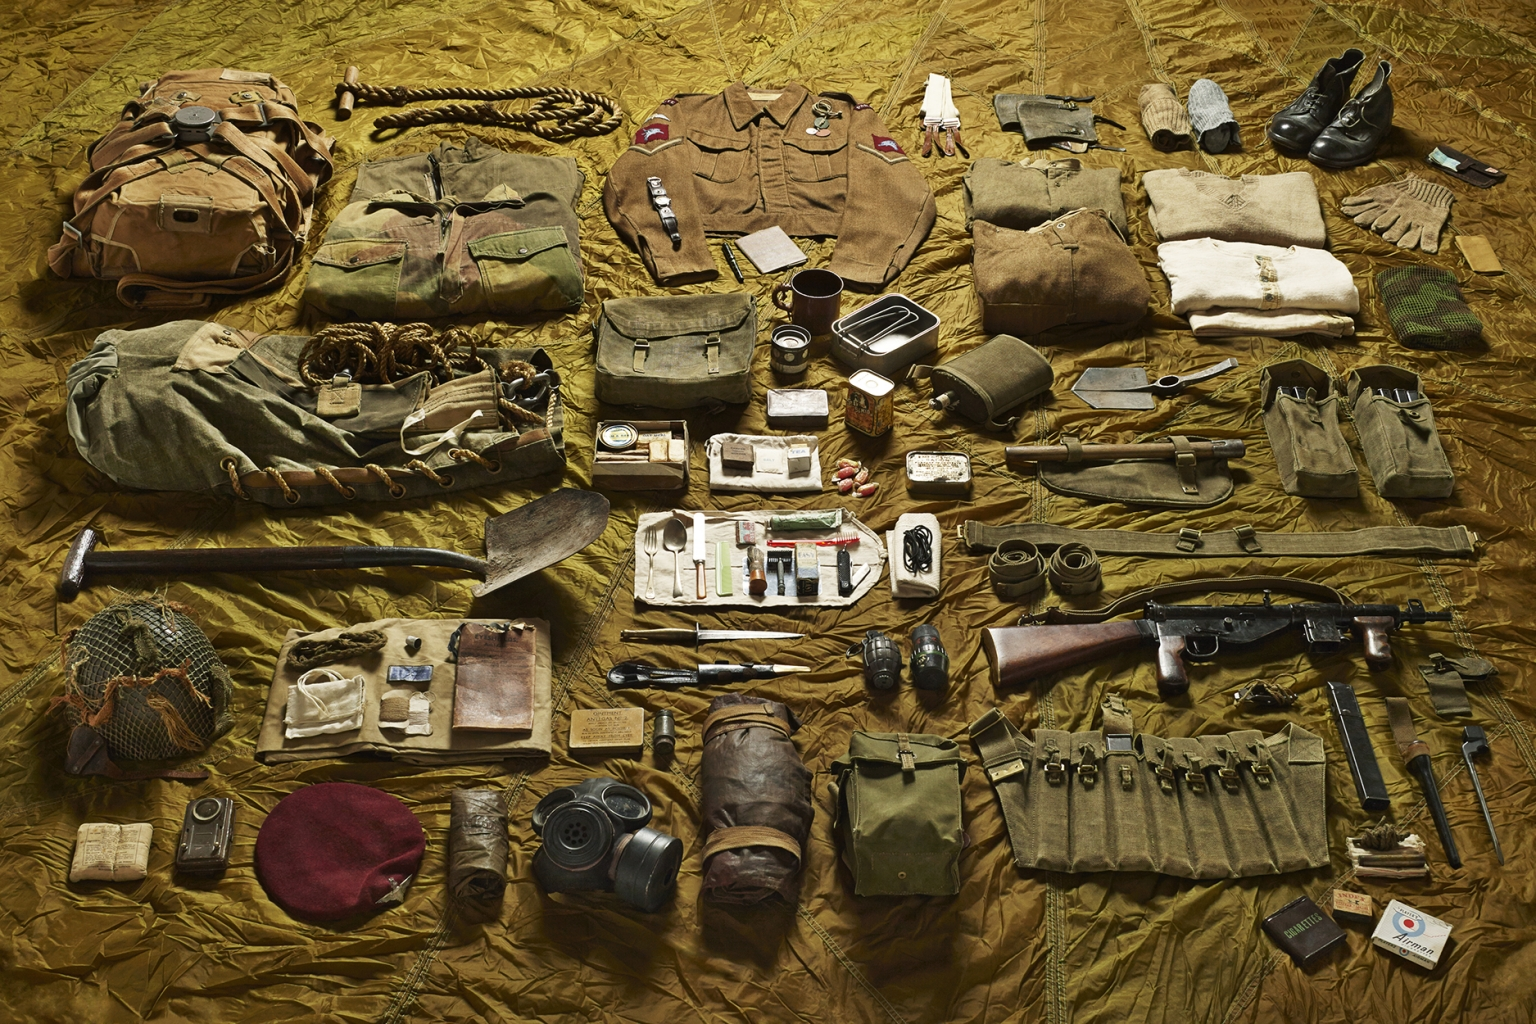 Lance Corporal, Parachute Brigade, Battle of Arnhem, 1944 - Soldiers' Inventories - Photo by Thom Atkinson